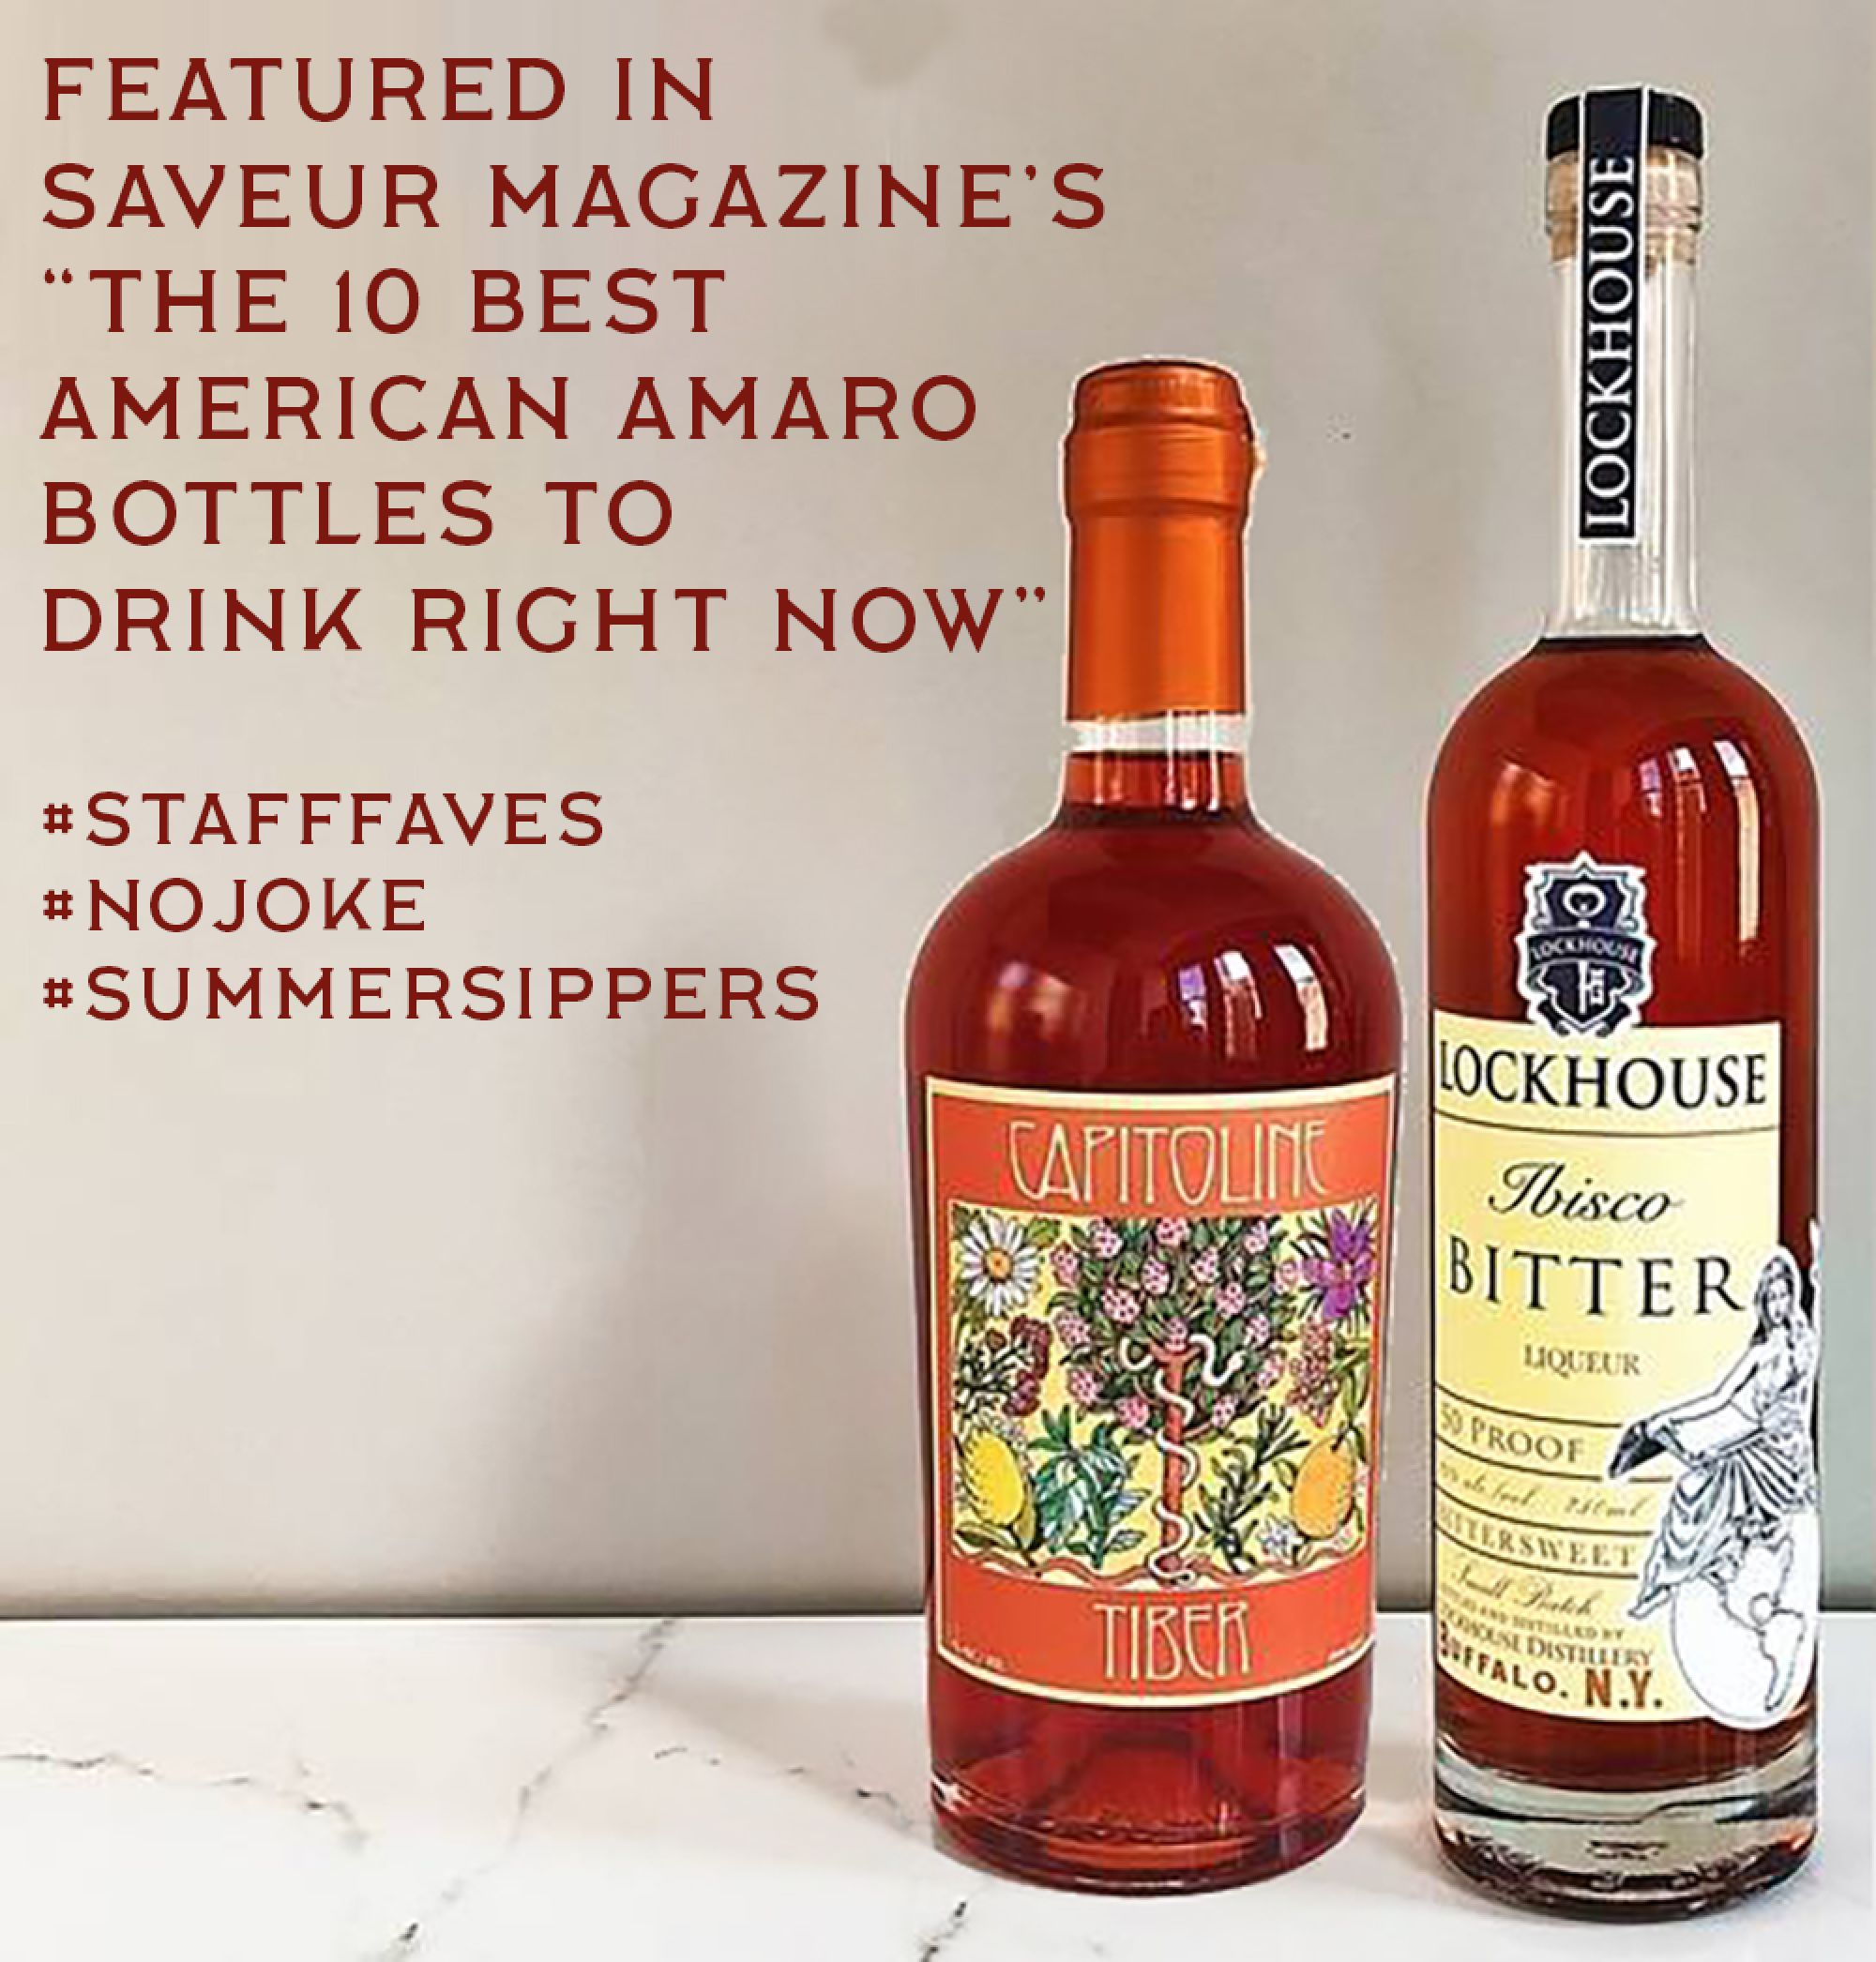 Our Tiber and Ibisco bitters are in the top 10 American bitters!